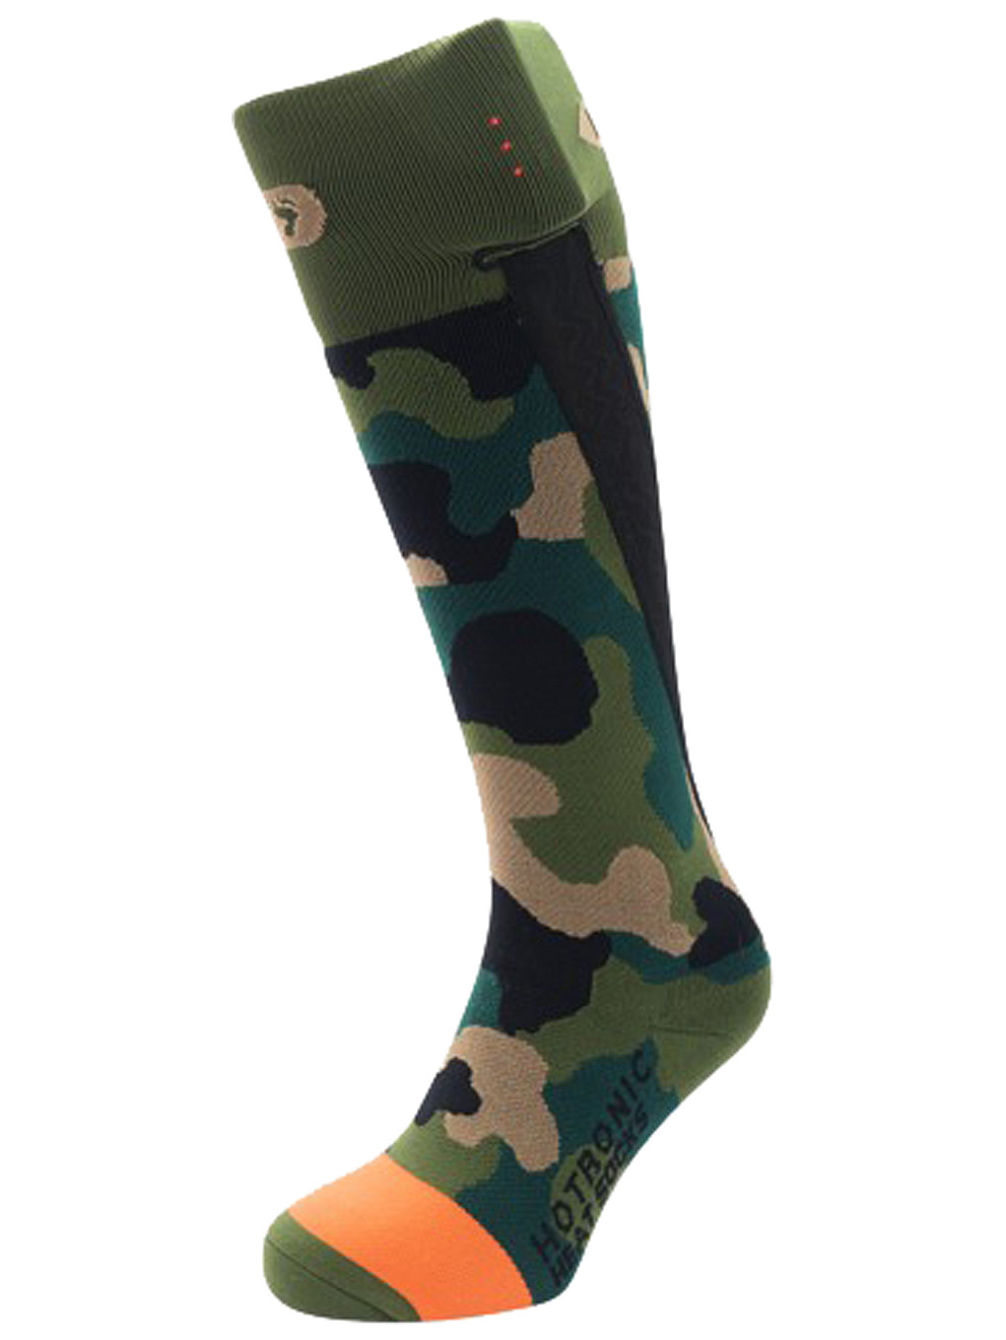 Heat XLP PFI 30 Tech Socks